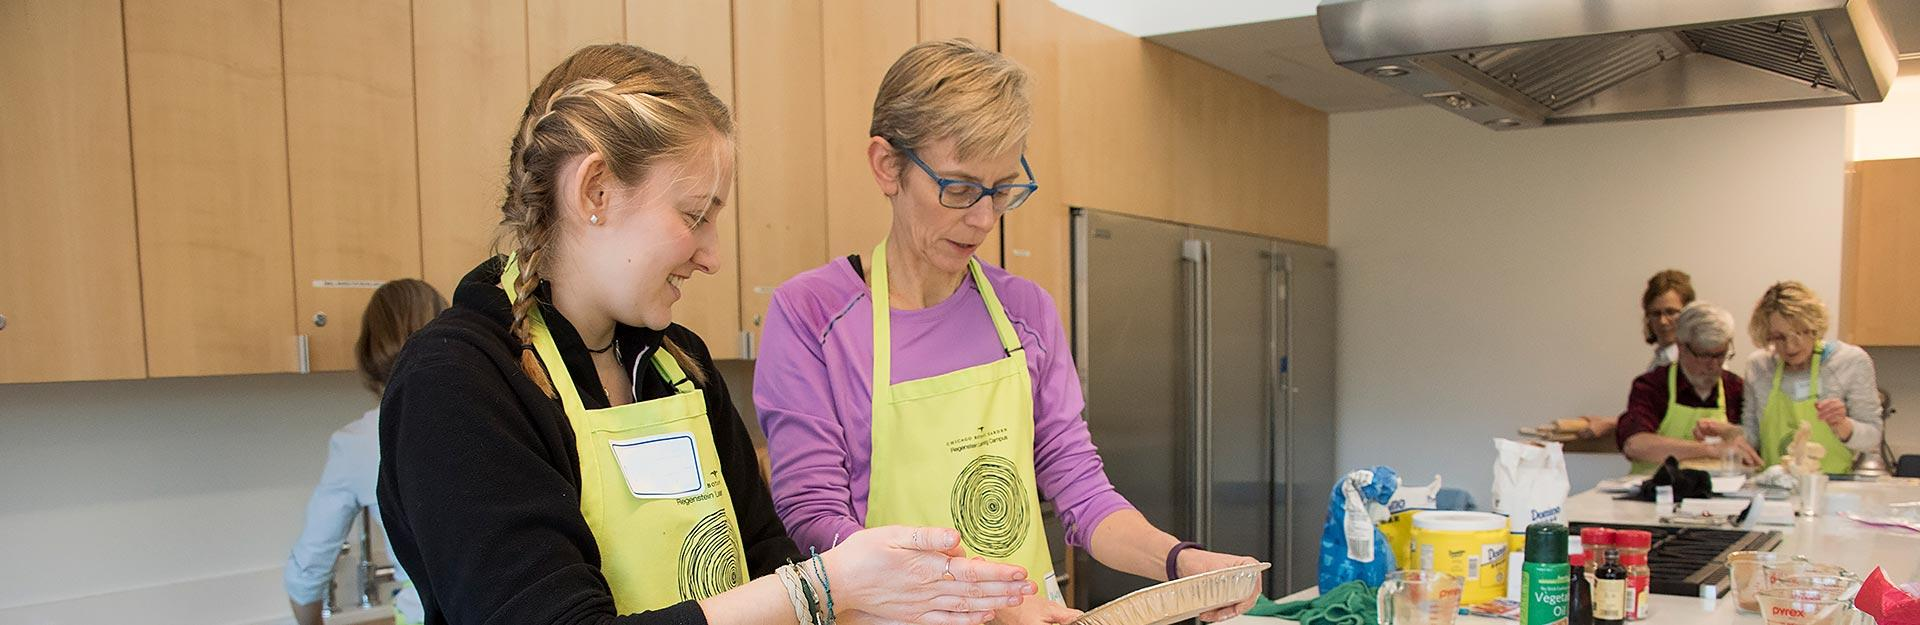 Hands-on Cooking: Irish Tea at Chicago Botanic Garden